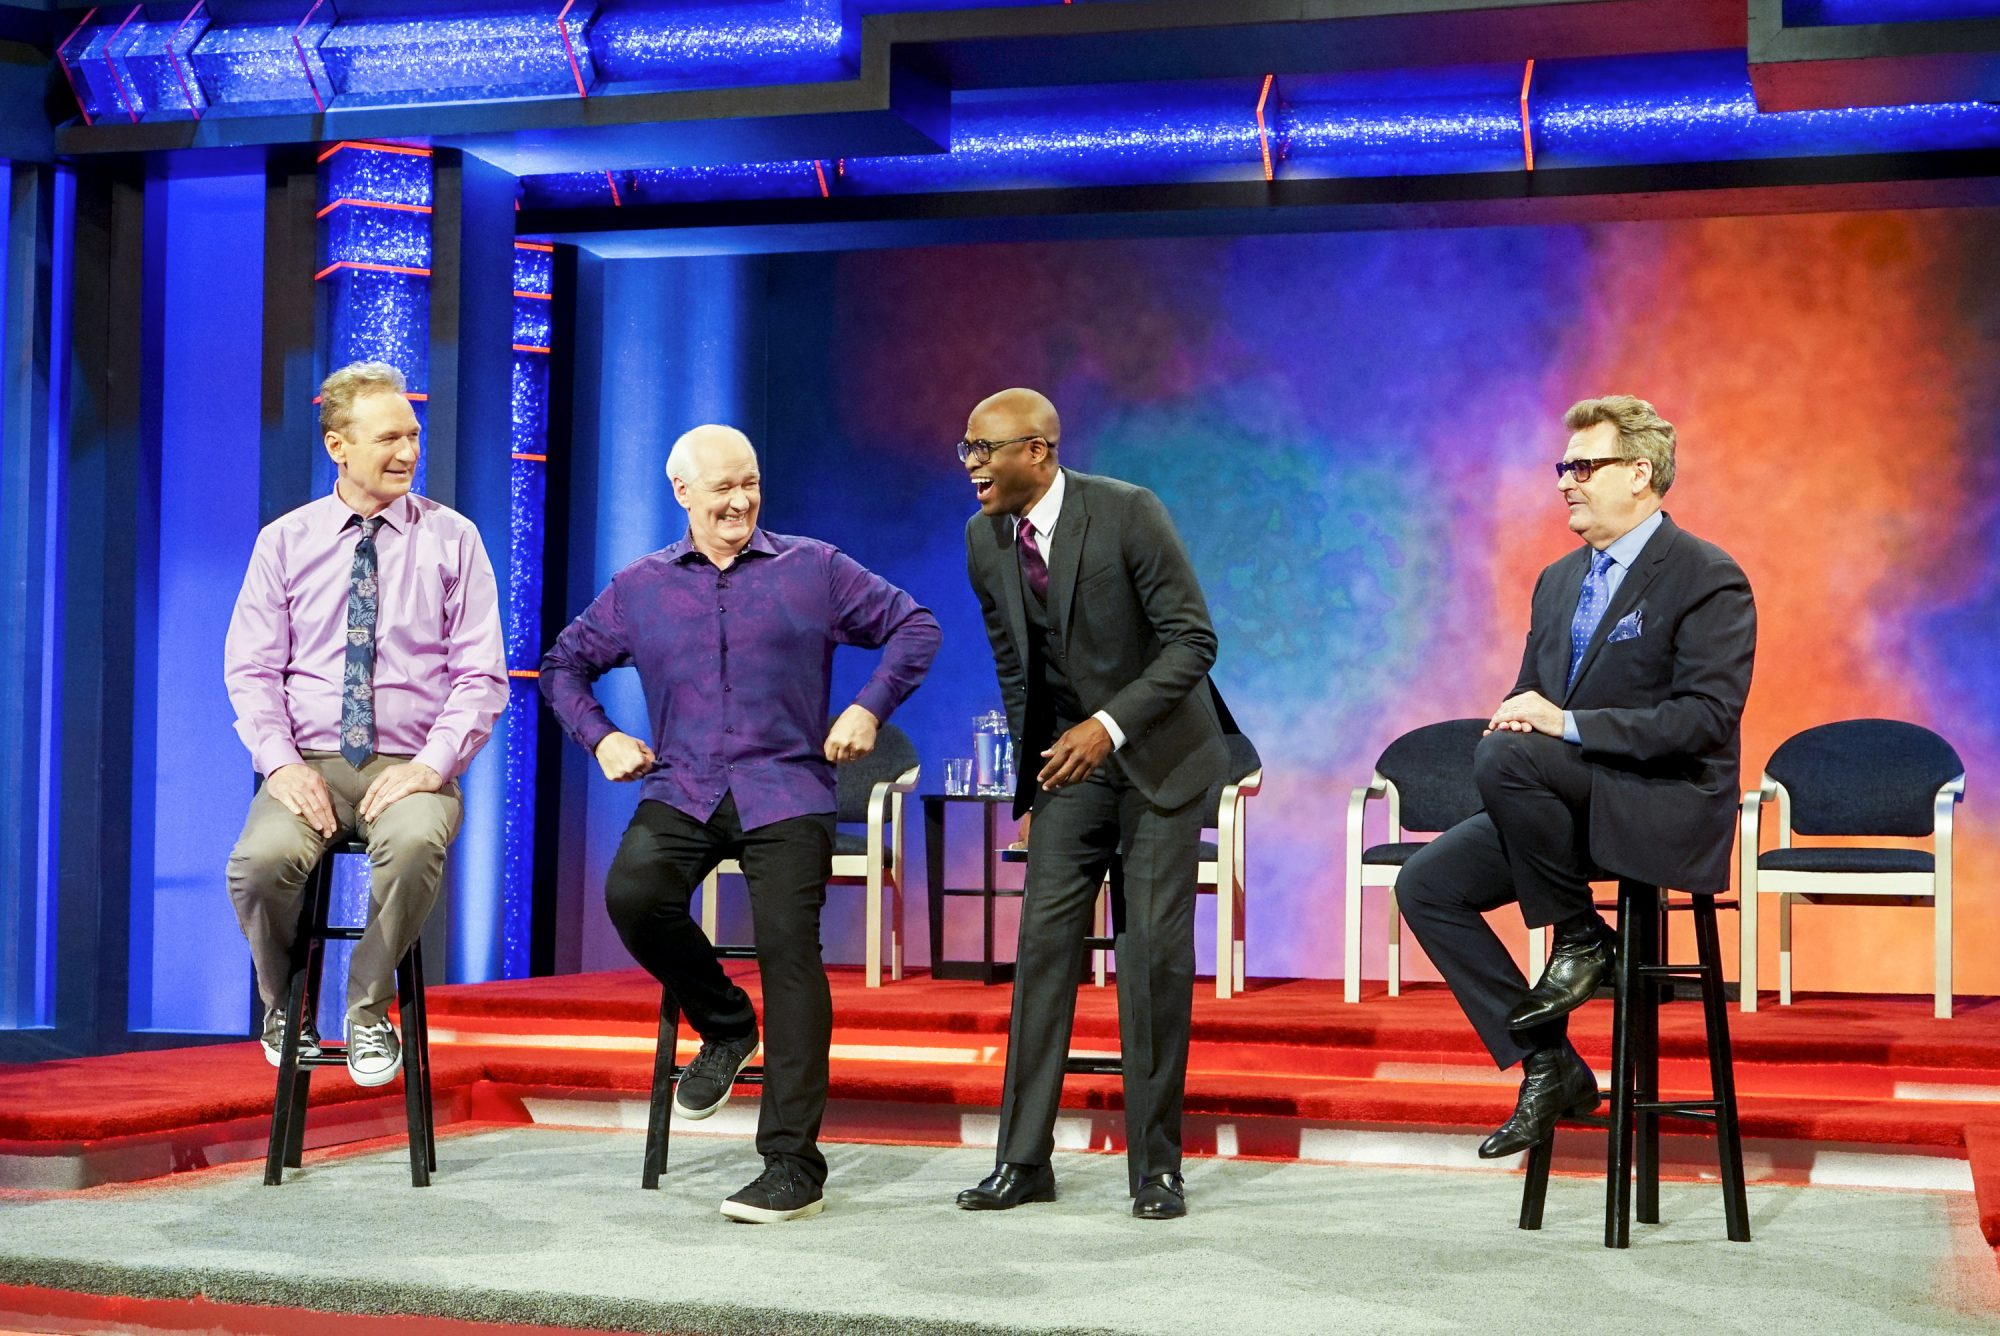 Comedians perform short-form improv on the popular program Whose Line is it Anyway?